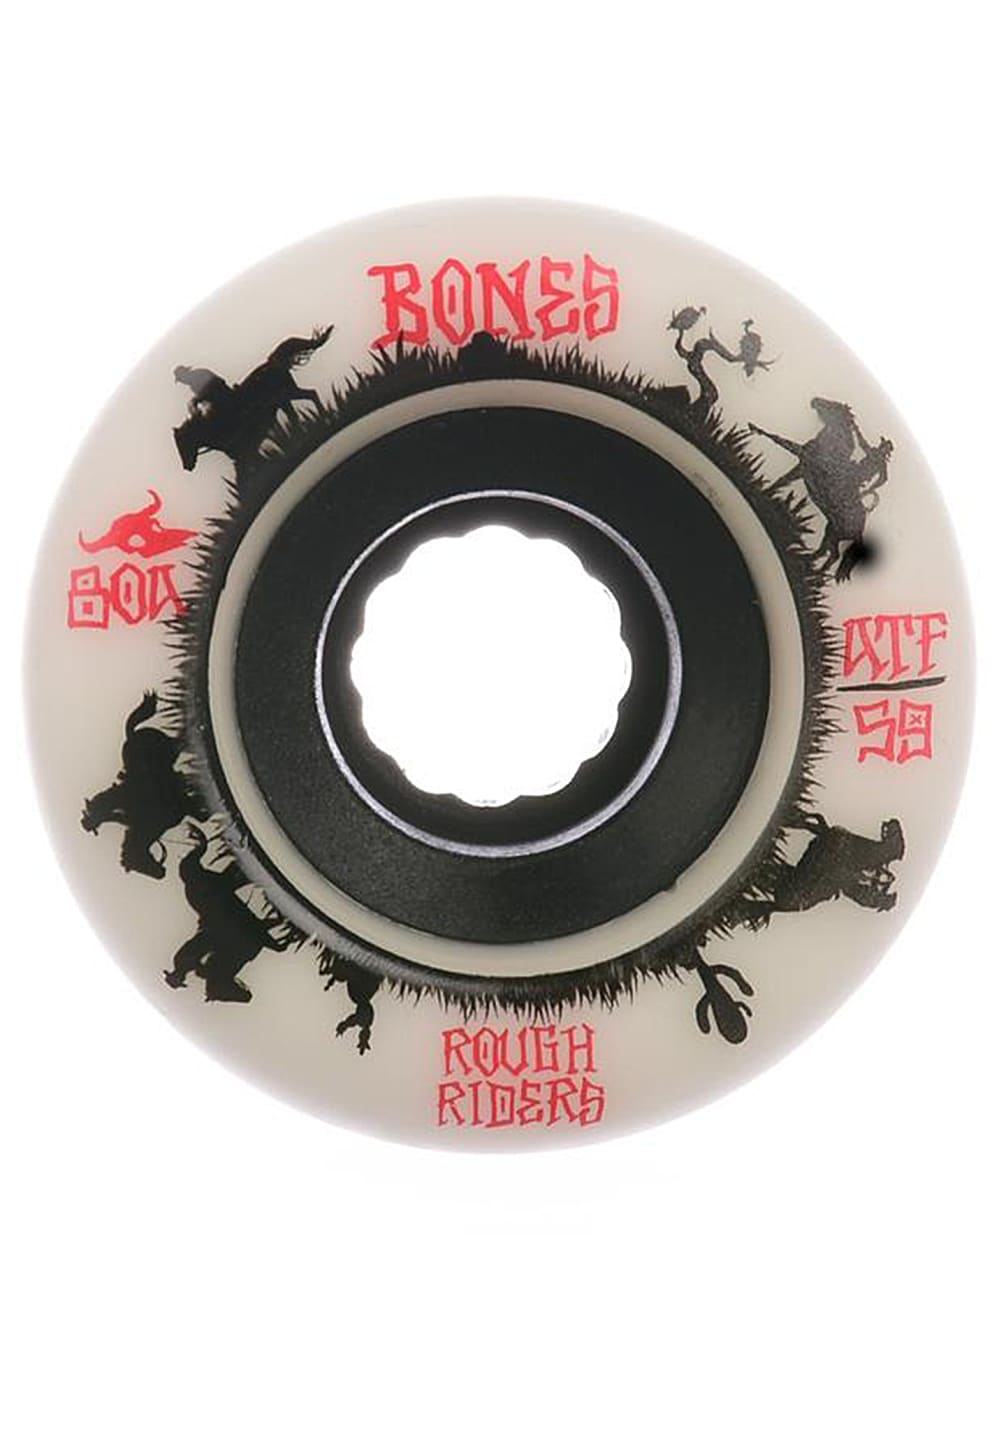 Planet Sports | BONES Rough Riders Wranglers 80A 56mm Skate Rollen – Weiß